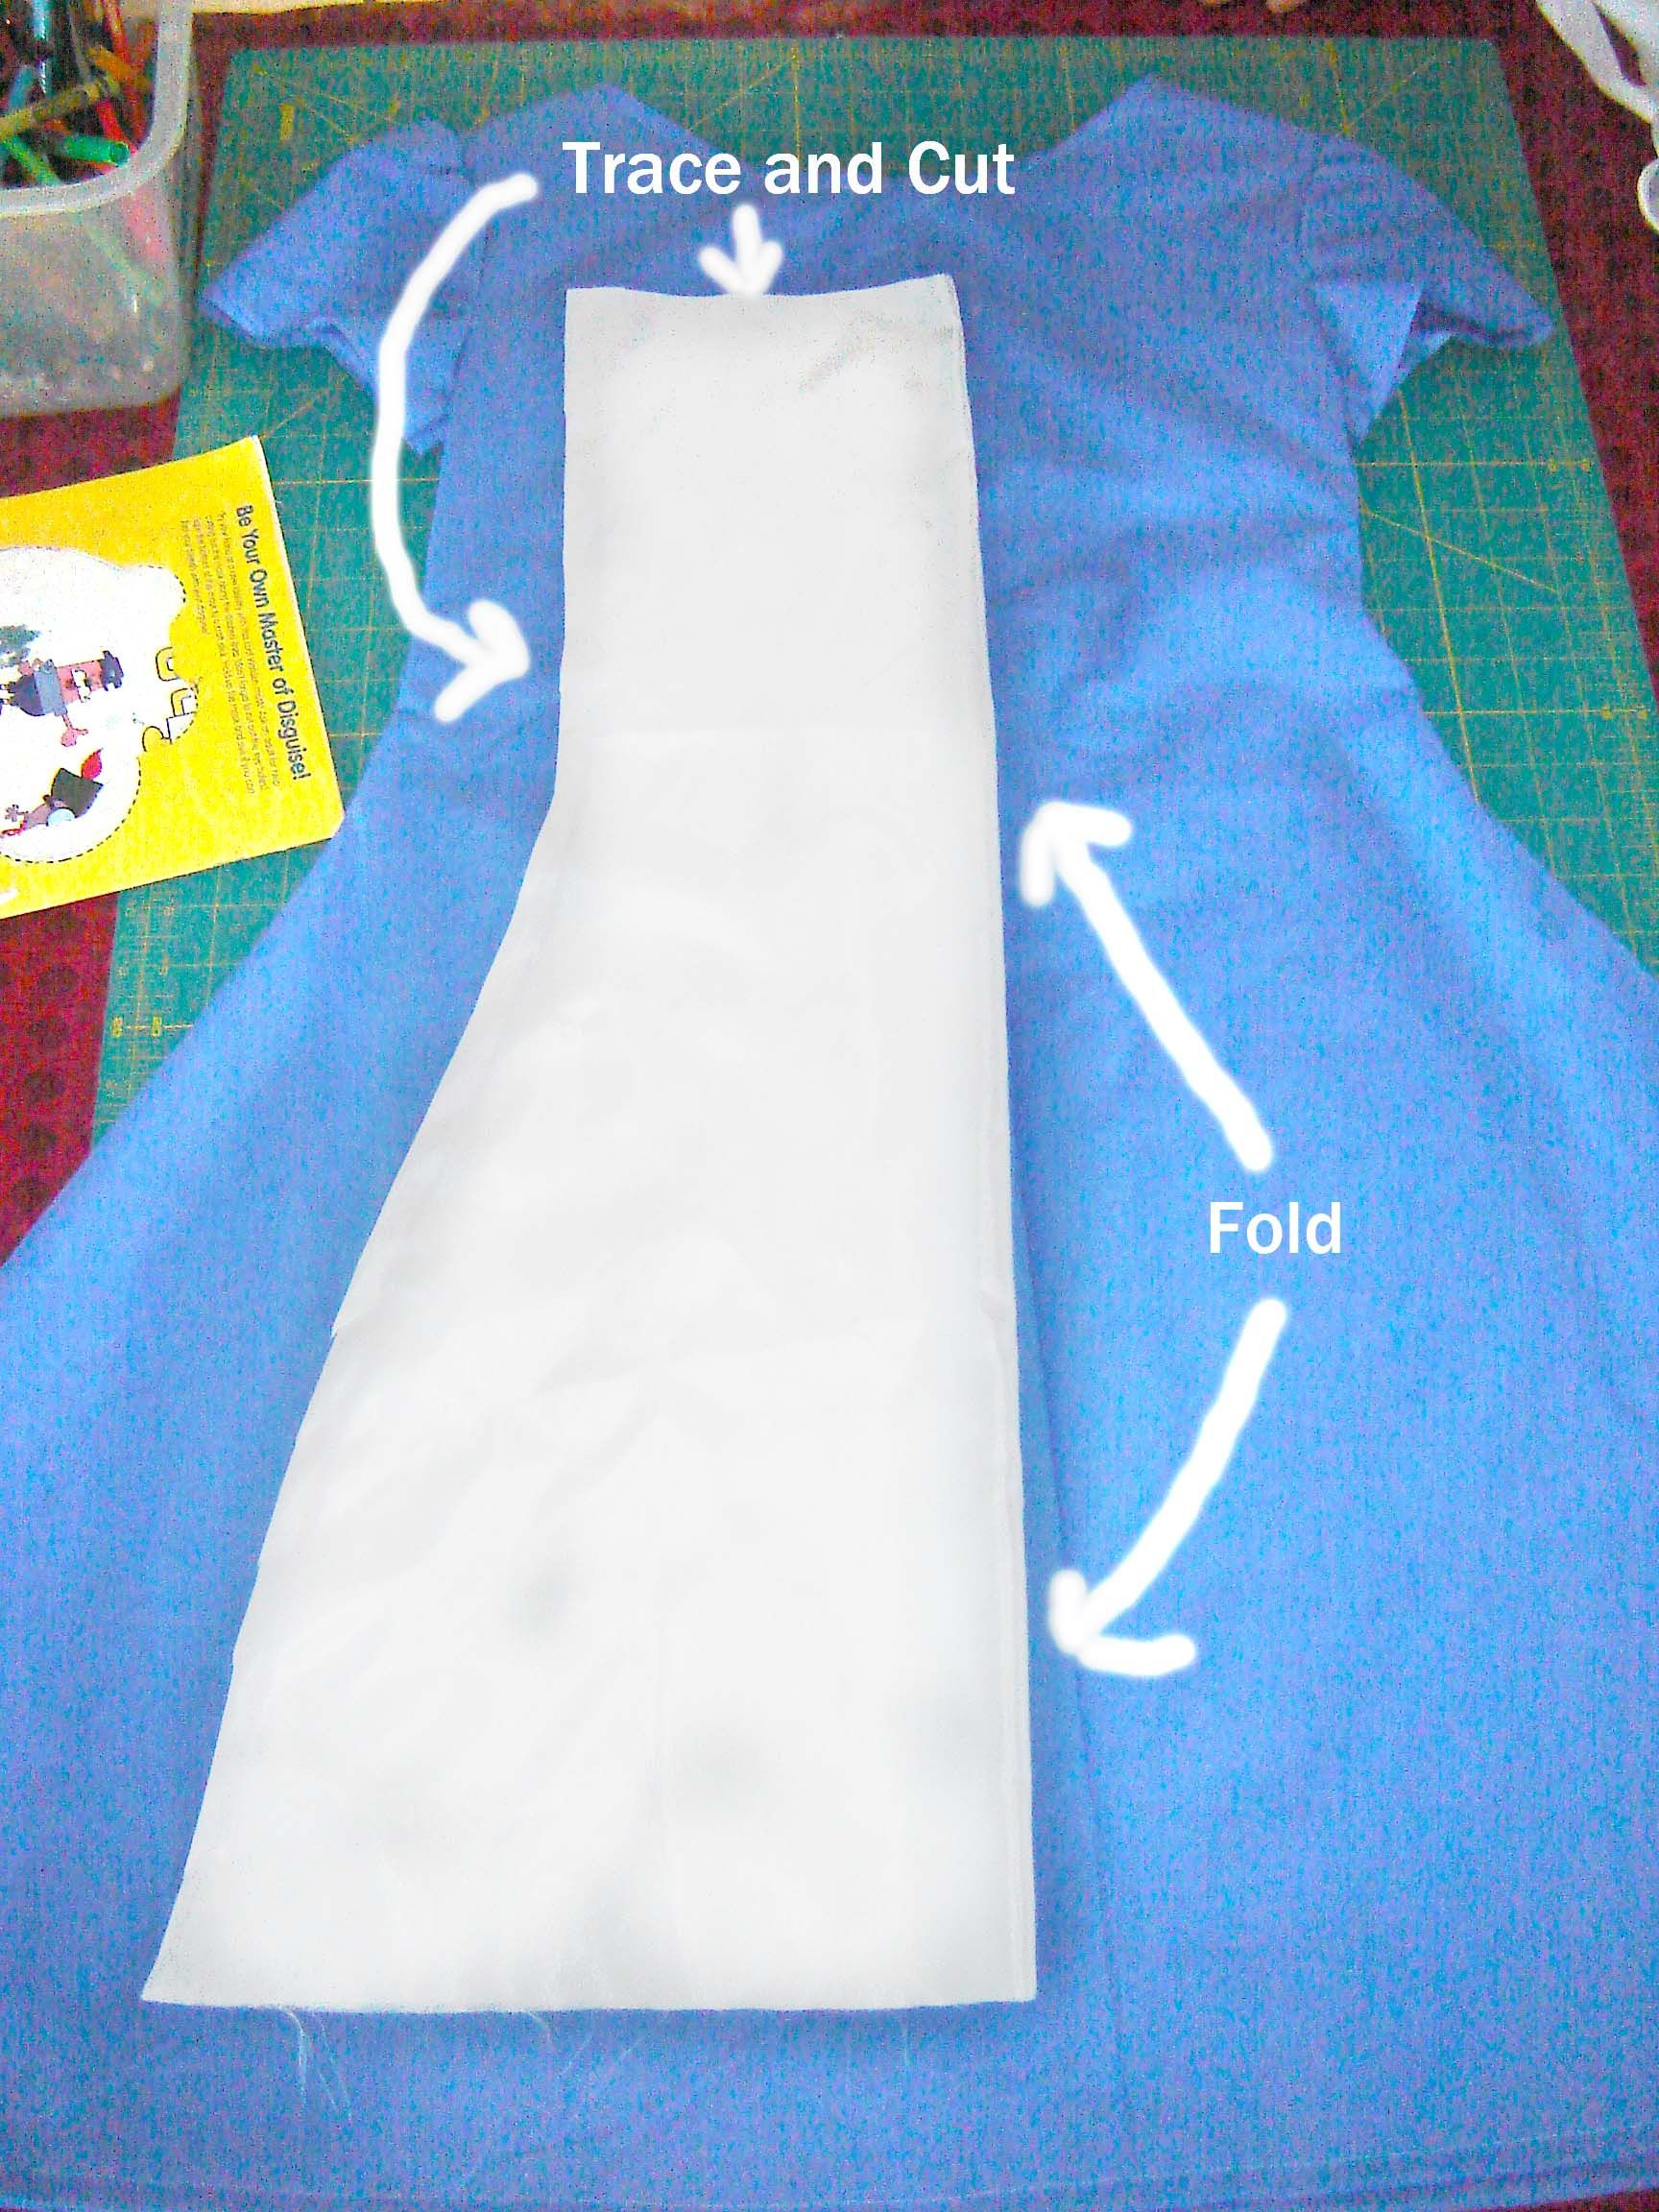 Last minute alice in wonderland alice in wonderland pinterest quick inexpensive and simple diy alice in wonderland costume instructions make the dress and apron on a budget in just hours solutioingenieria Gallery